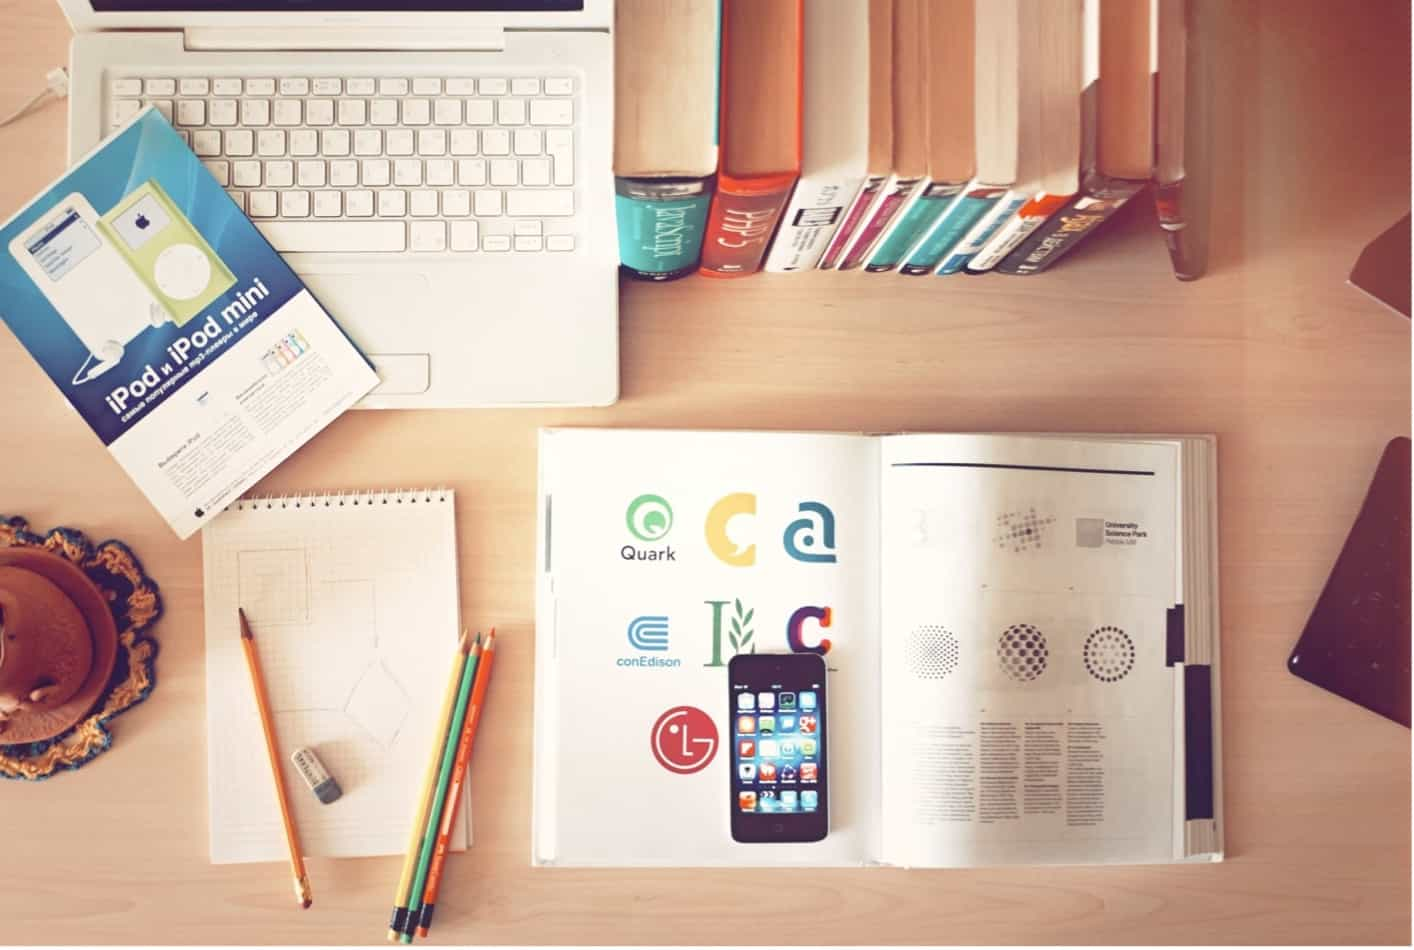 Graphic Design is not your ordinary career path. You'll need determination to be successful!